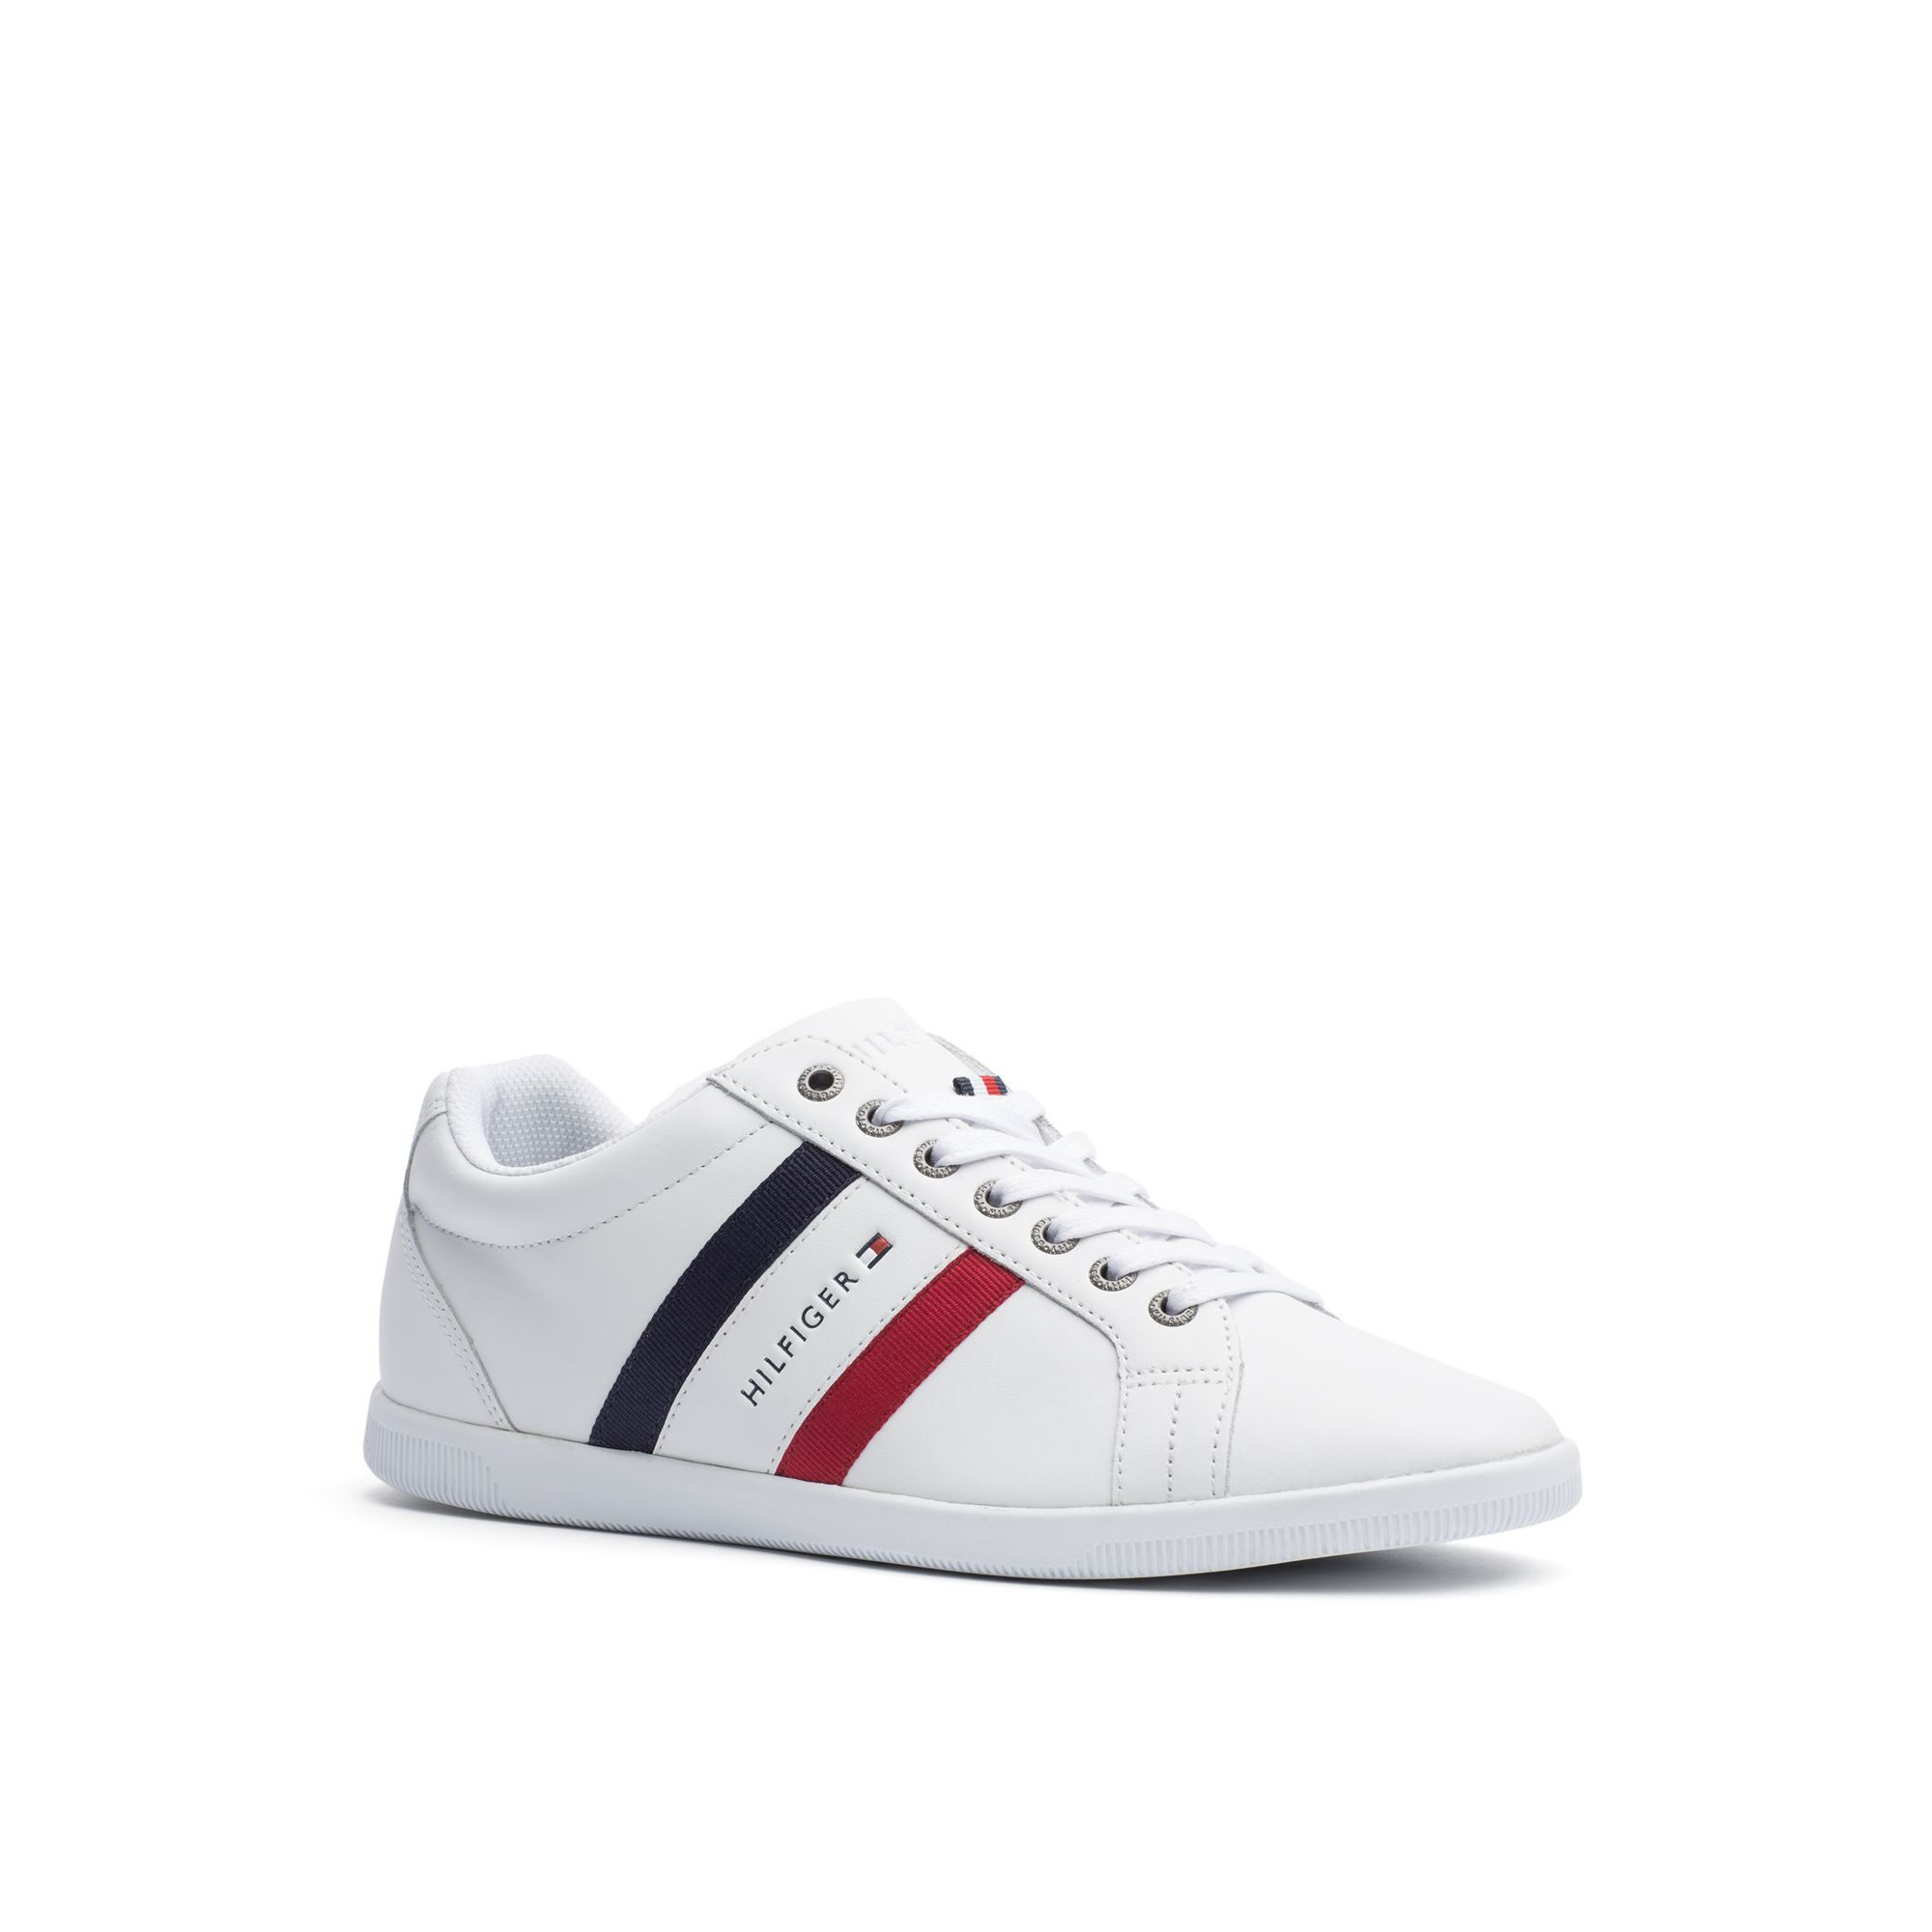 f1a103a268 TOMMY HILFIGER MULTI-STRIPE LEATHER SNEAKER - WHITE. #tommyhilfiger #shoes #